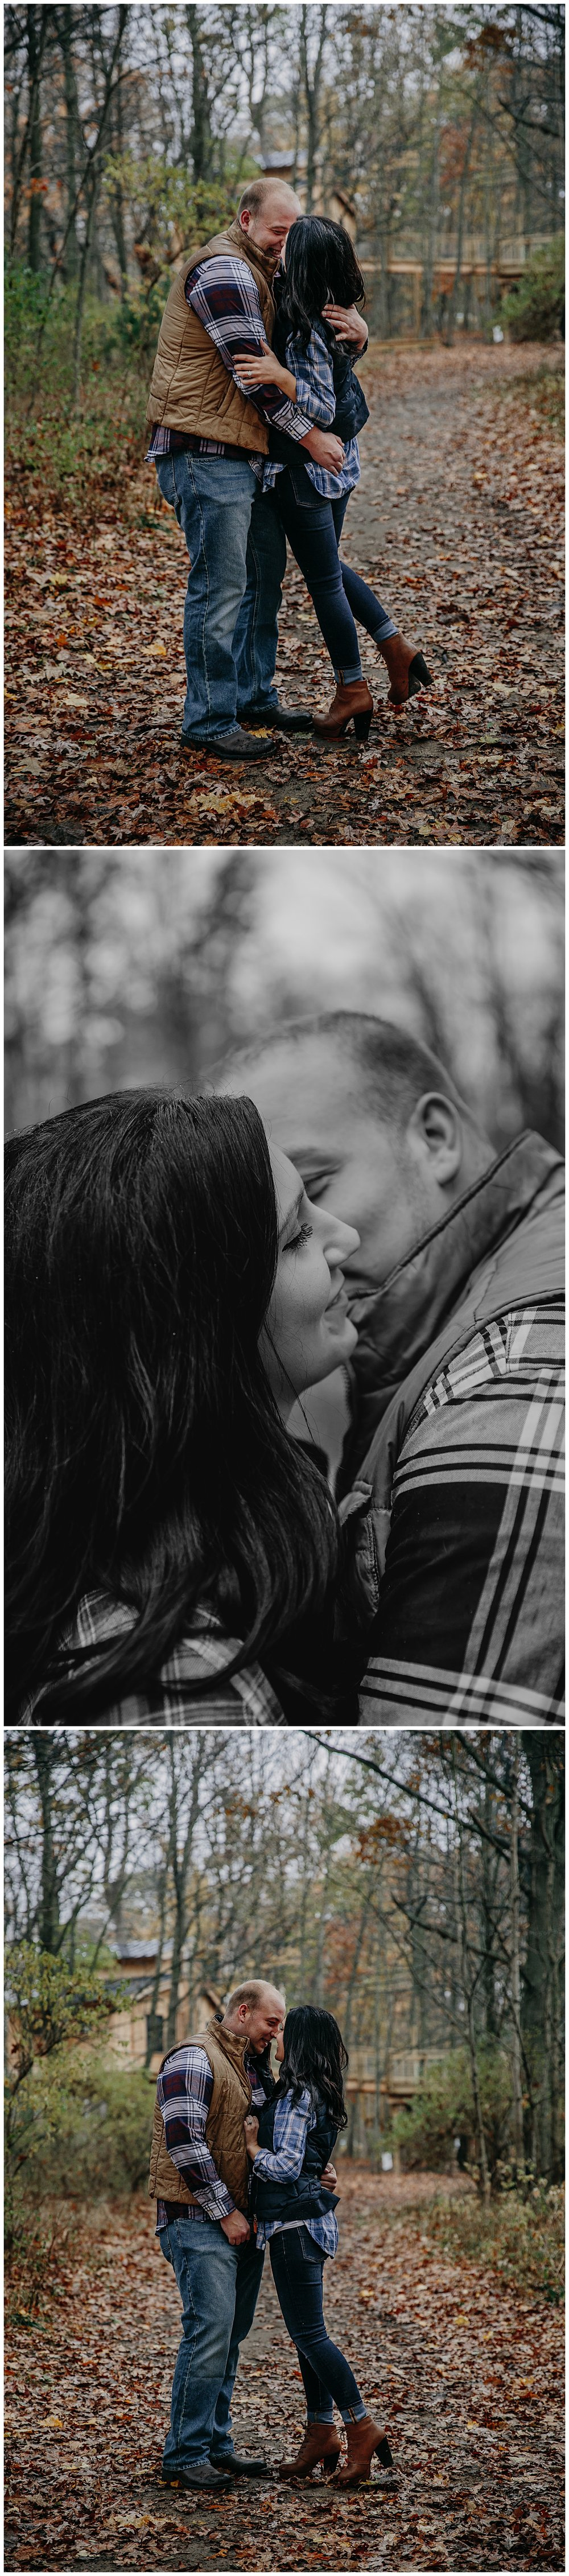 For-Mar-Nature-Preserve-Arboretum-Engagement-Session-Burton-Michigan_0033.jpg